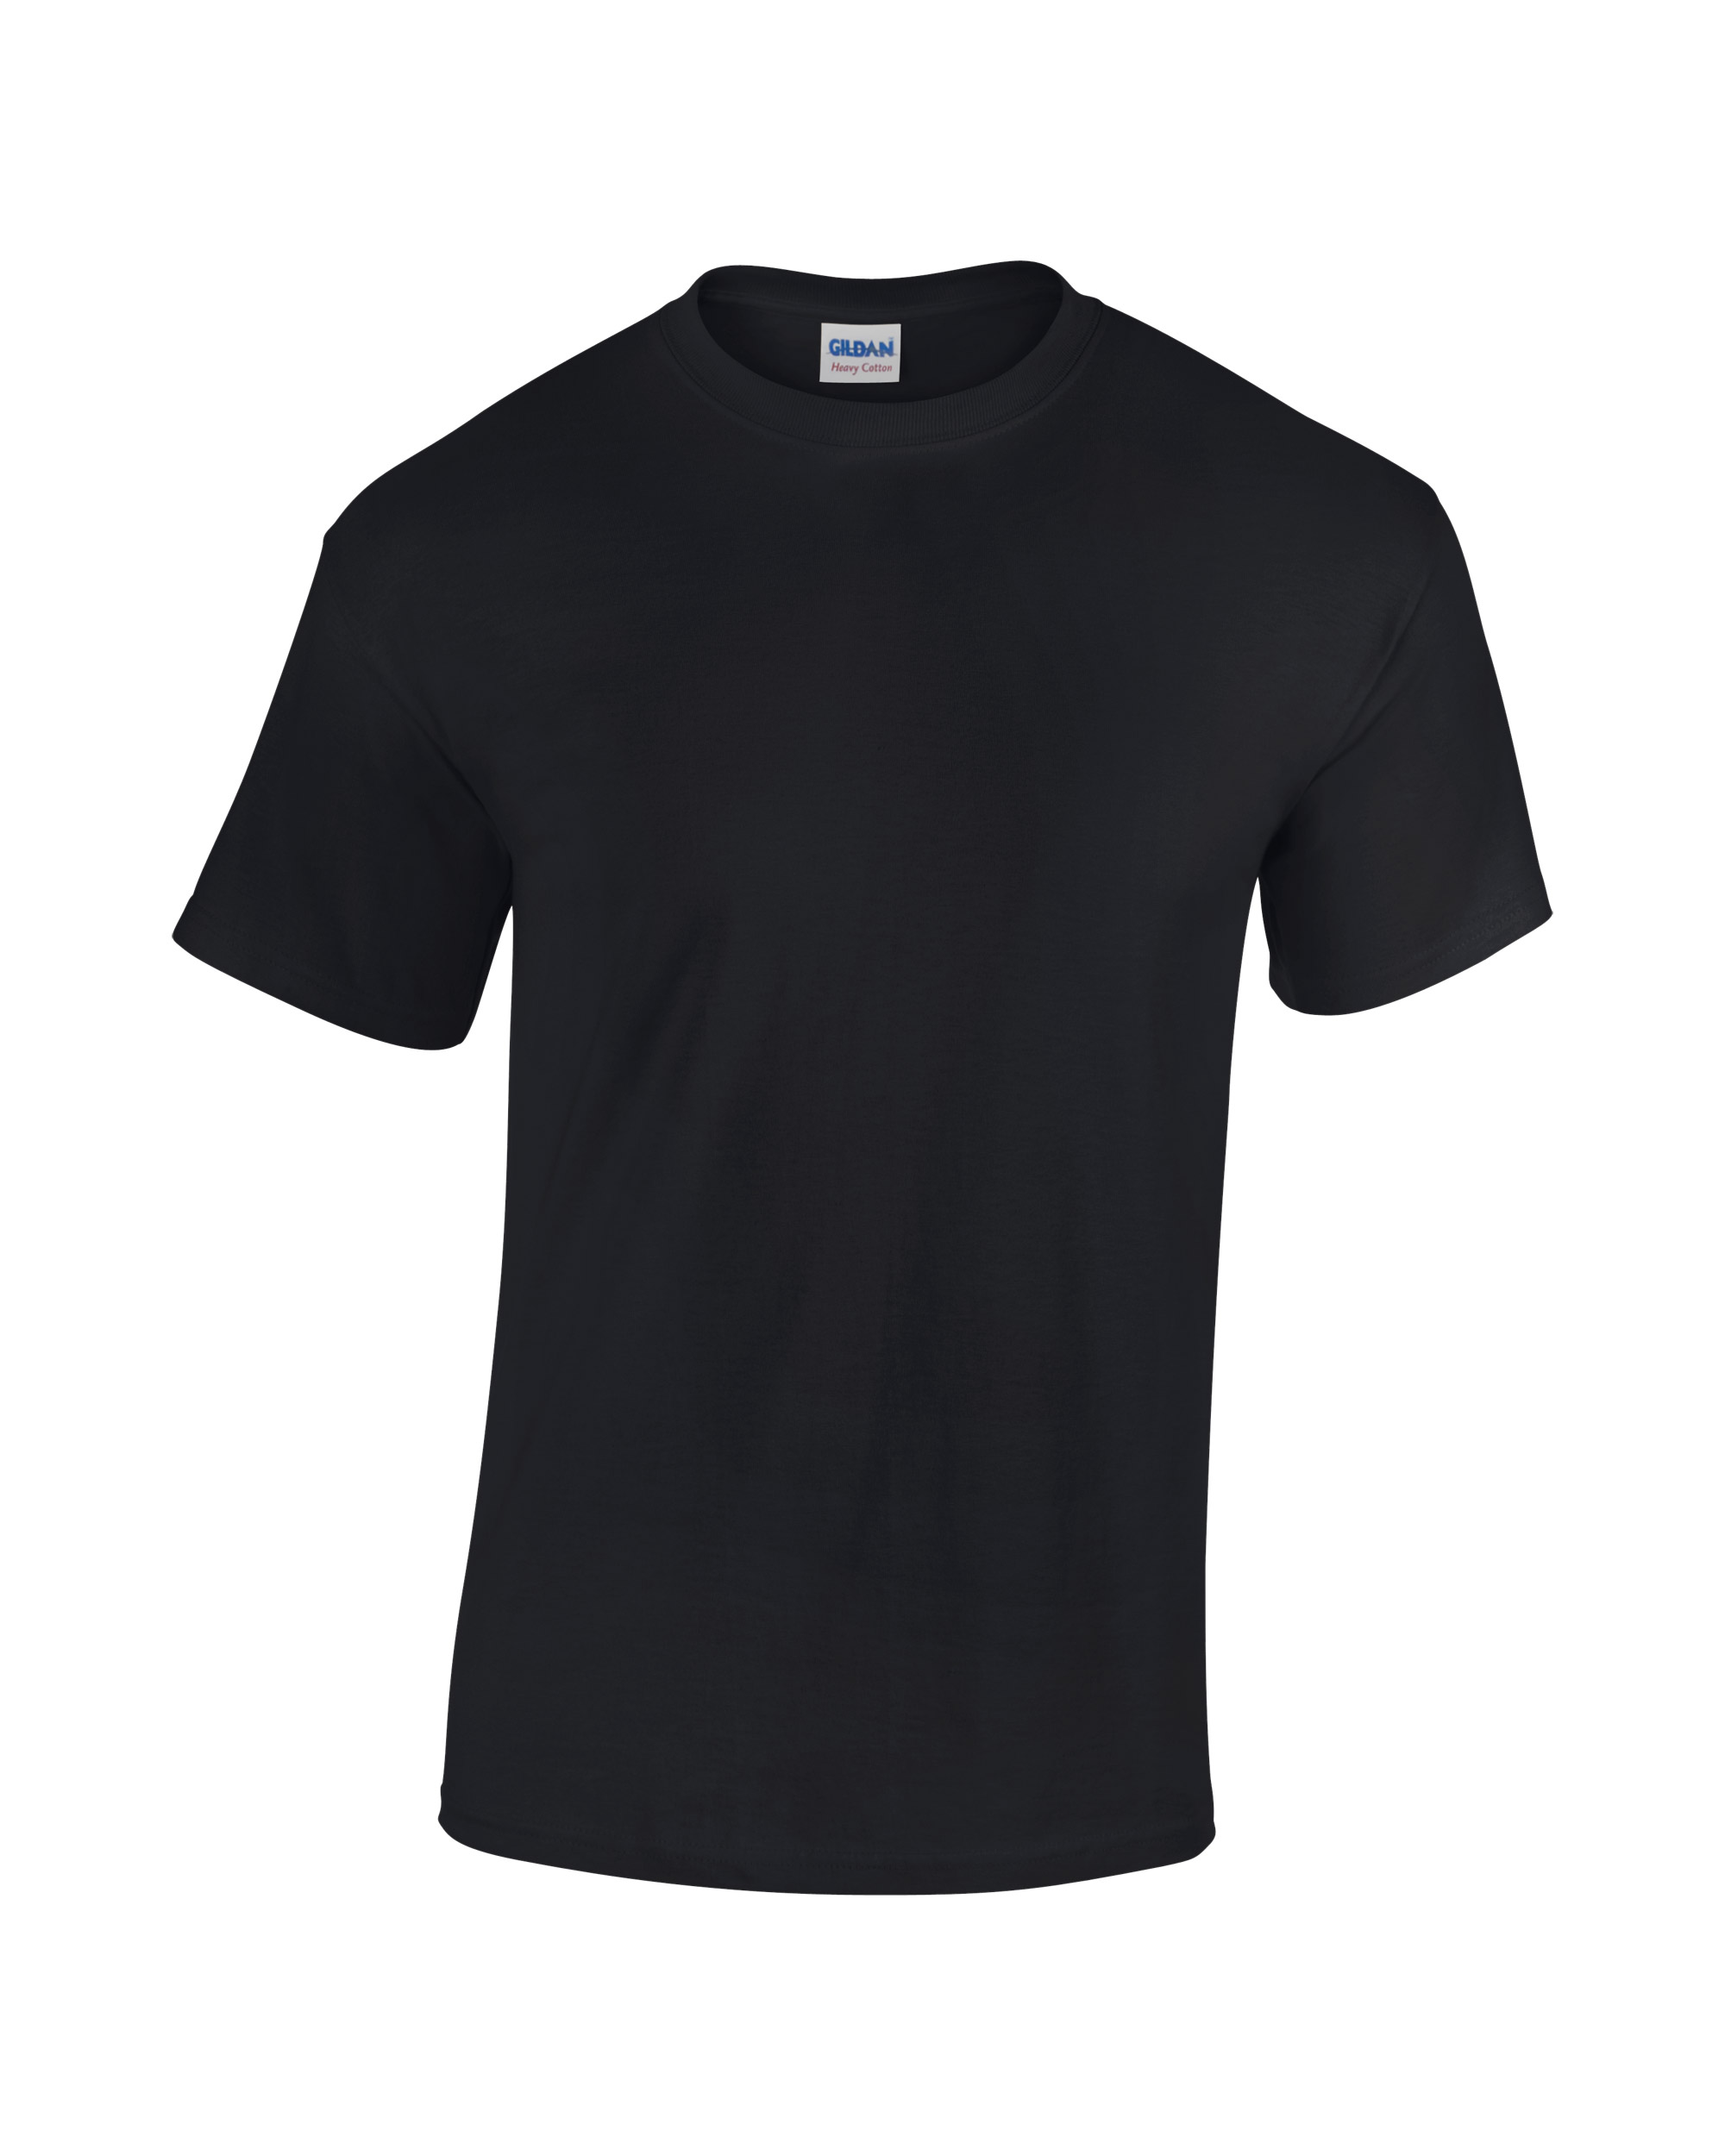 31f2e6bfa ... 5000-426C black-5.3 oz- heavy cotton- Mens shirts-ladies shirts- ...